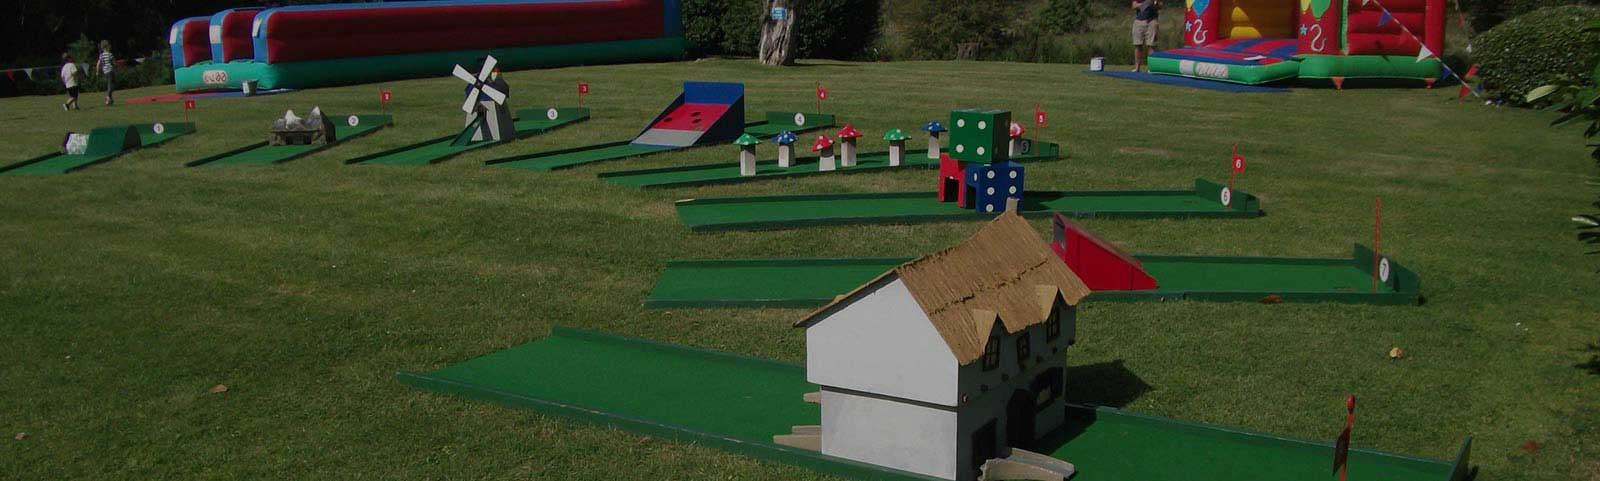 mini golf props setup on a field